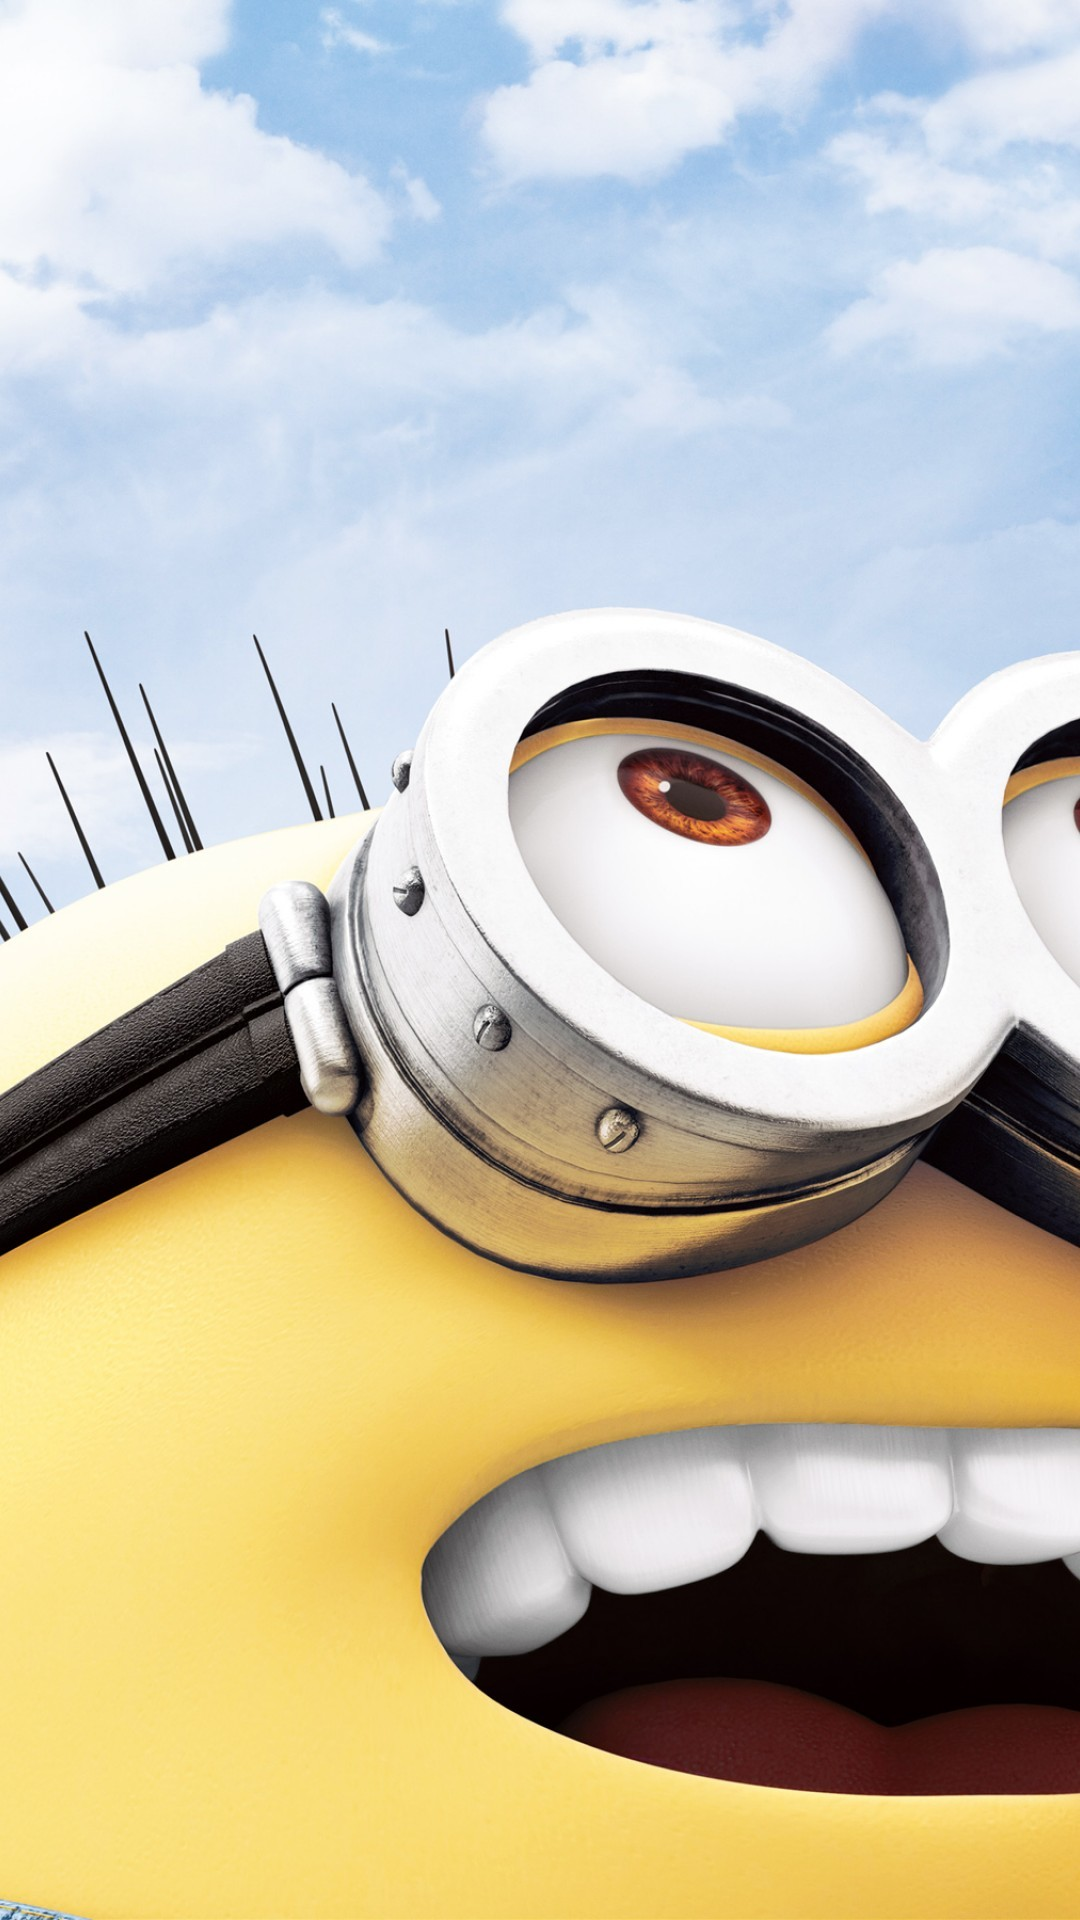 1080x1920 Minions hd wallpaper 2015